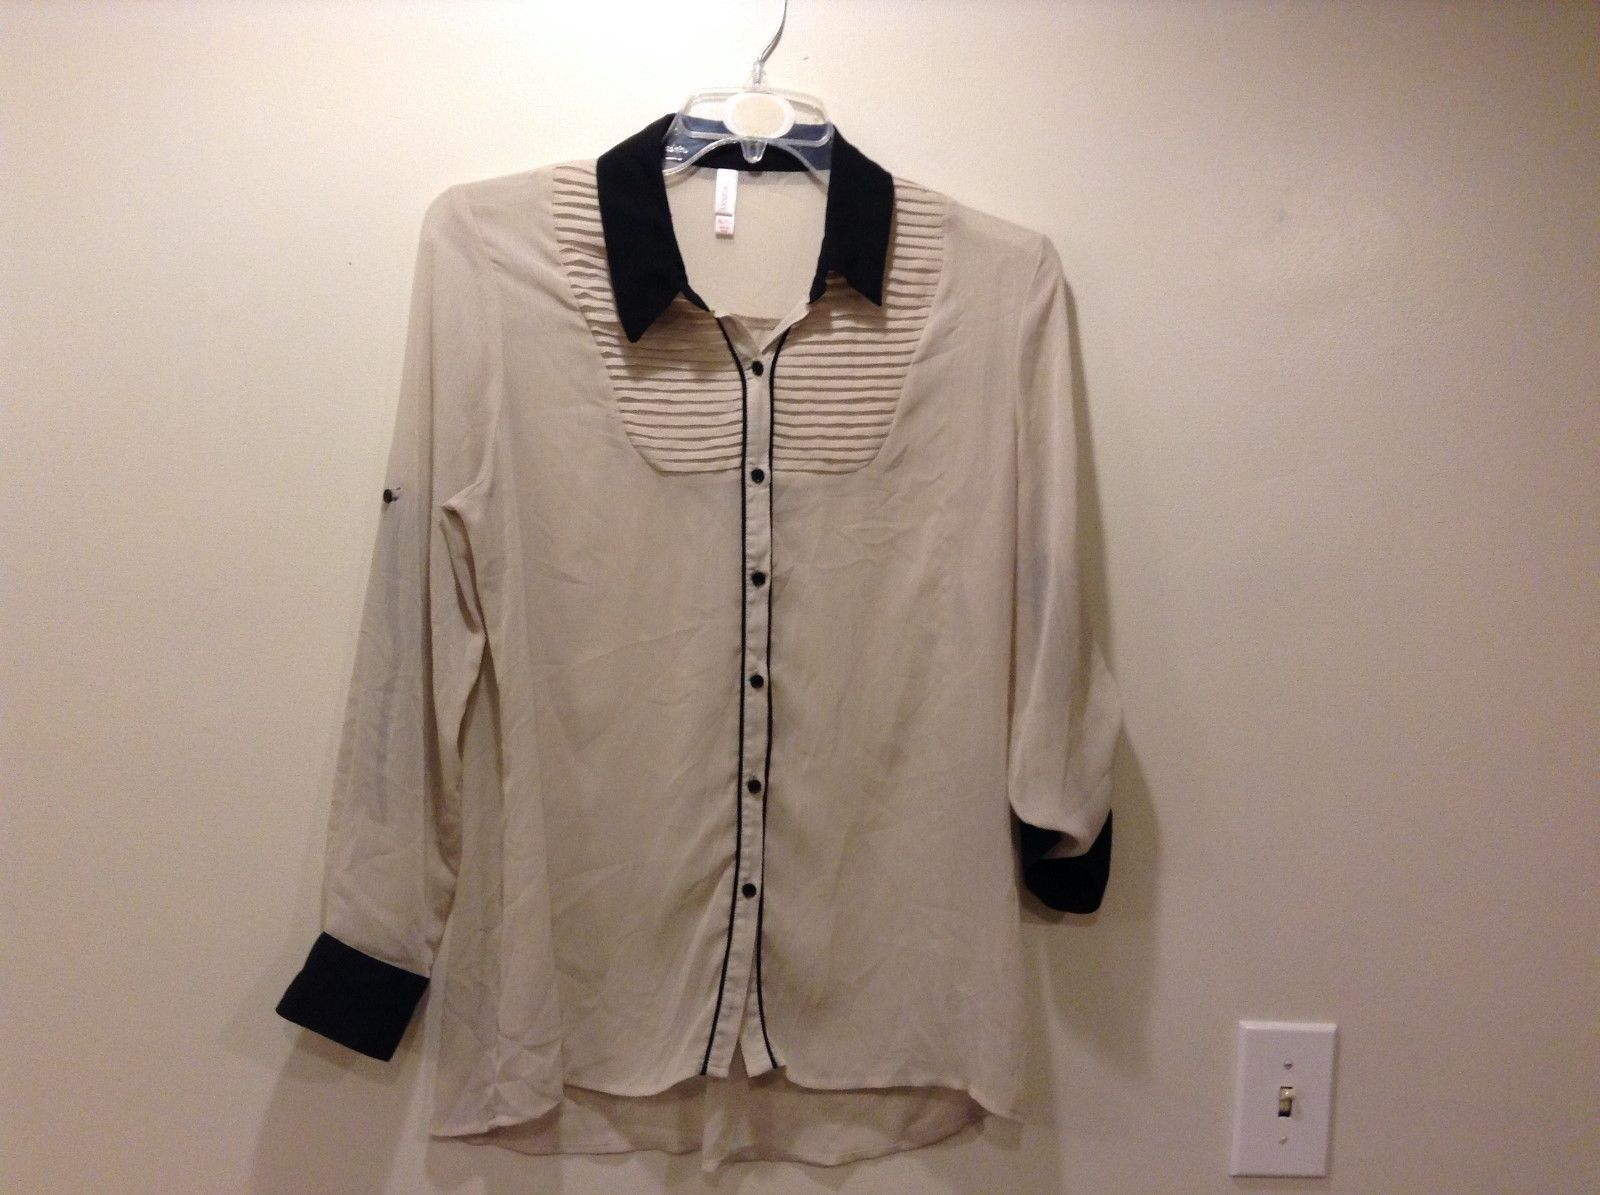 XHILARATION Sheer Beige w Blk Collar Button Up Blouse Sz XL